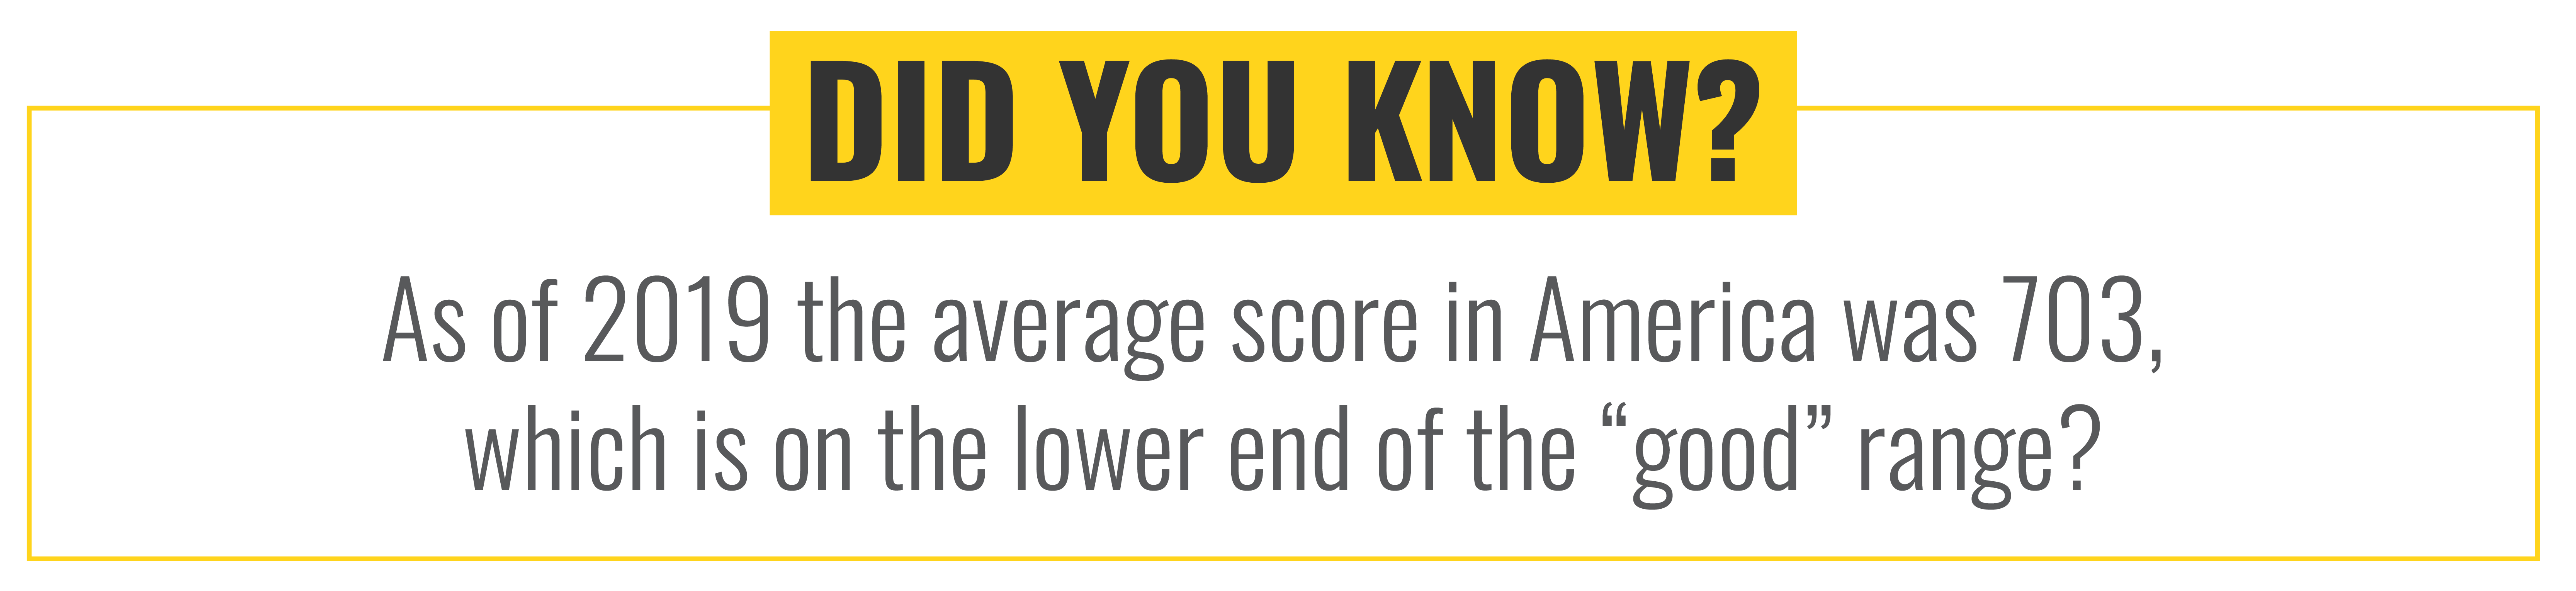 "Did you know as of 2019 the average score in America was 703, which is on the lower end of the ""good"" range?"